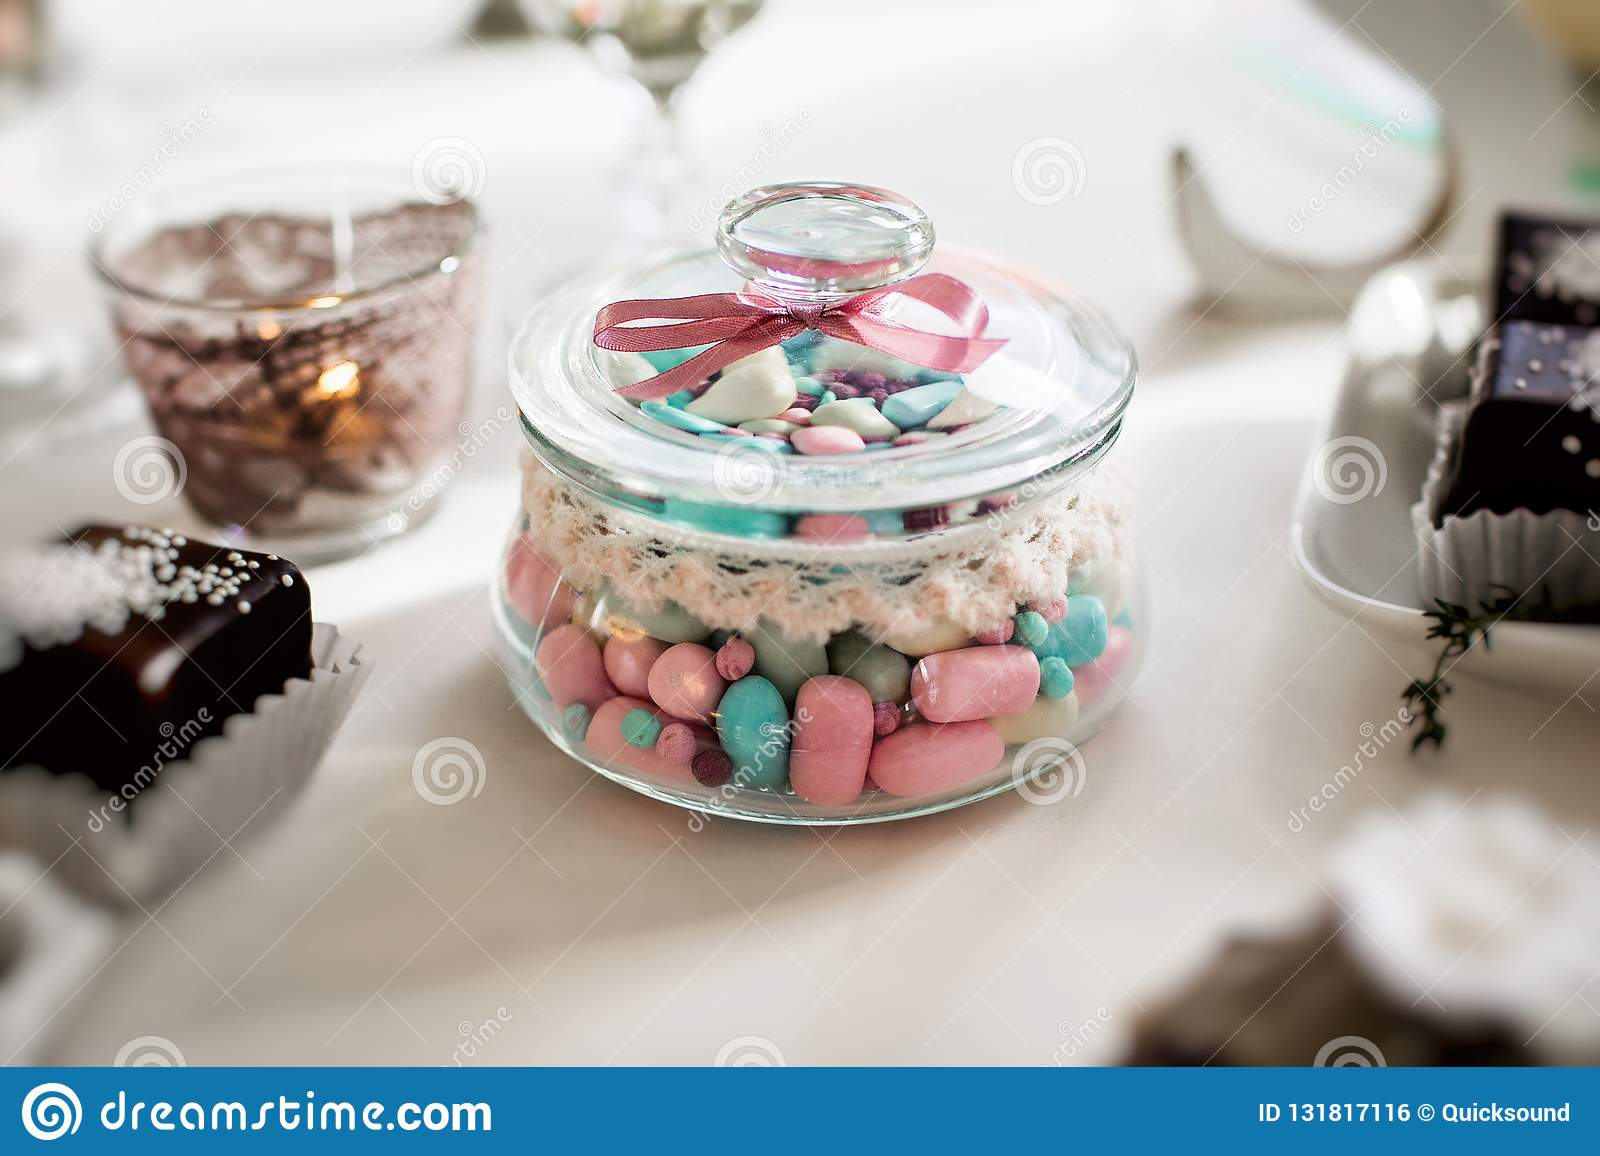 Groovy Pastel Candies In A Jar Stock Photo Image Of Candy 131817116 Complete Home Design Collection Barbaintelli Responsecom